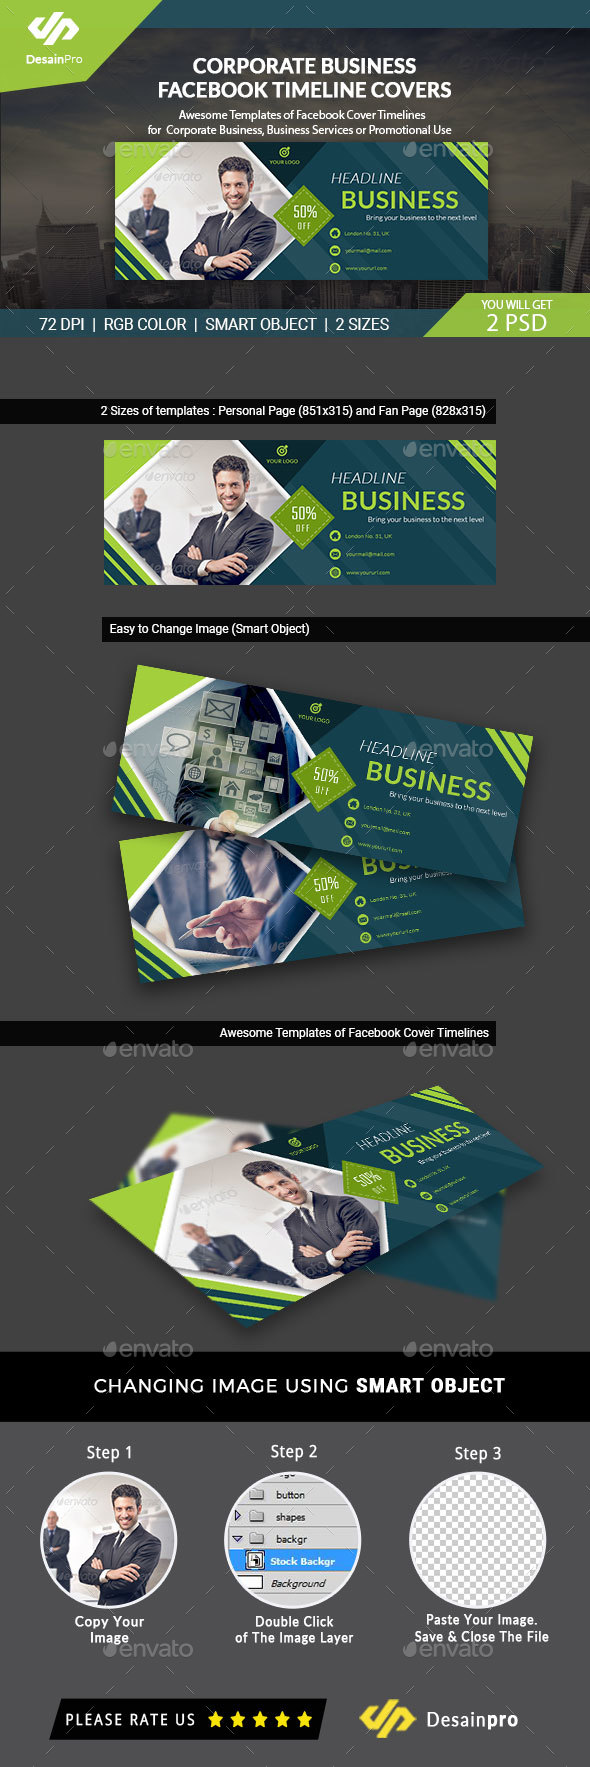 Business fb cover templates ar by desainpro graphicriver business fb cover templates ar facebook timeline covers social media accmission Choice Image